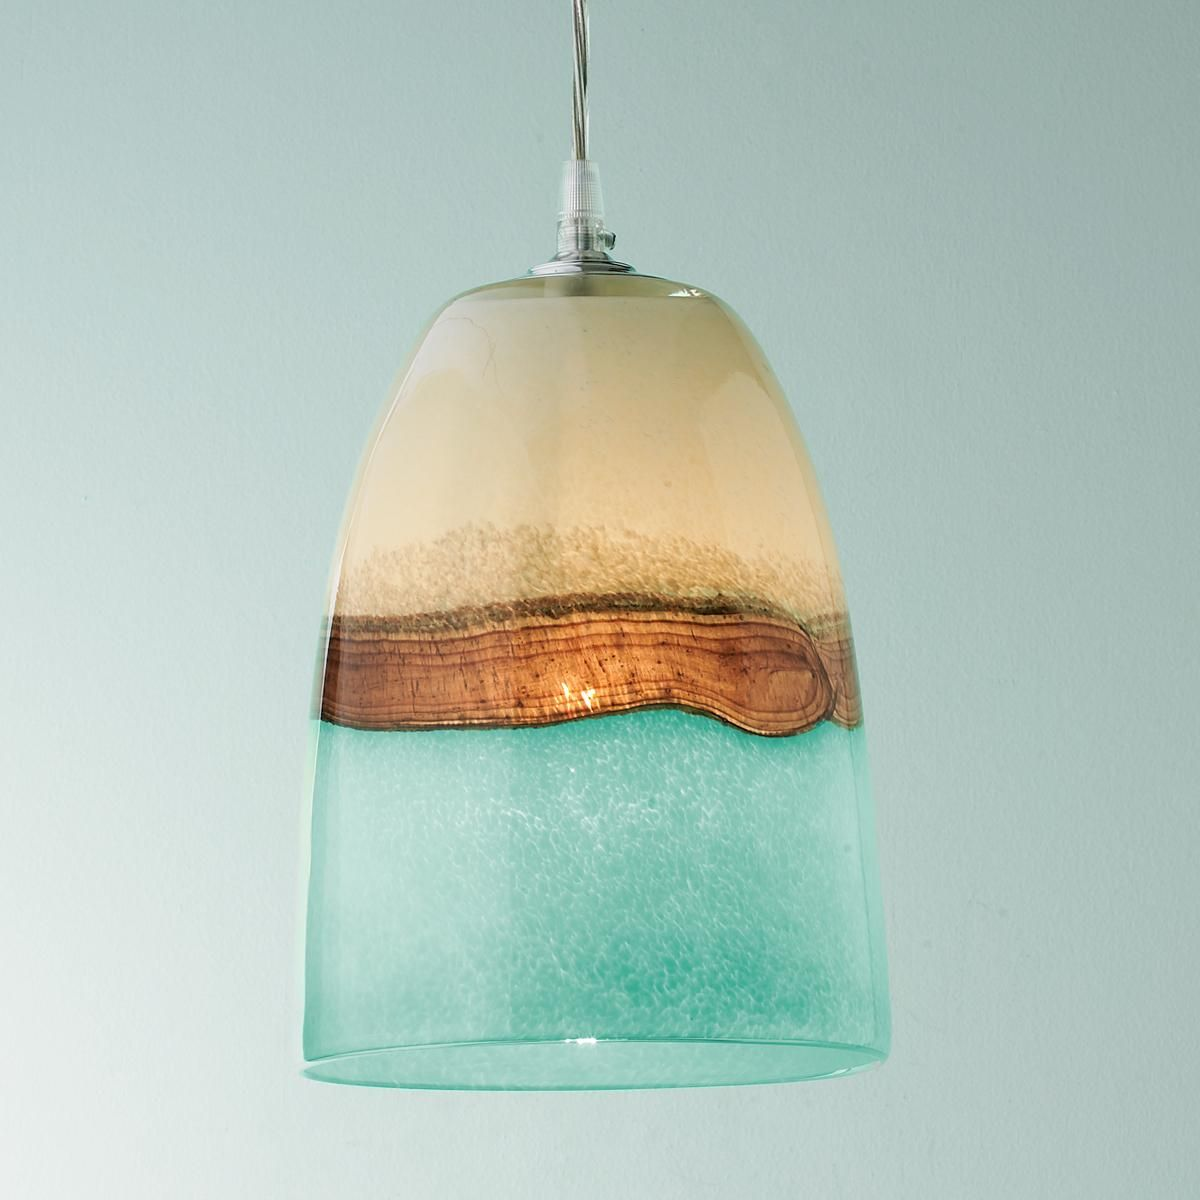 Light Pendants Strata Art Glass Pendant Light Cream Art Glass Pendants